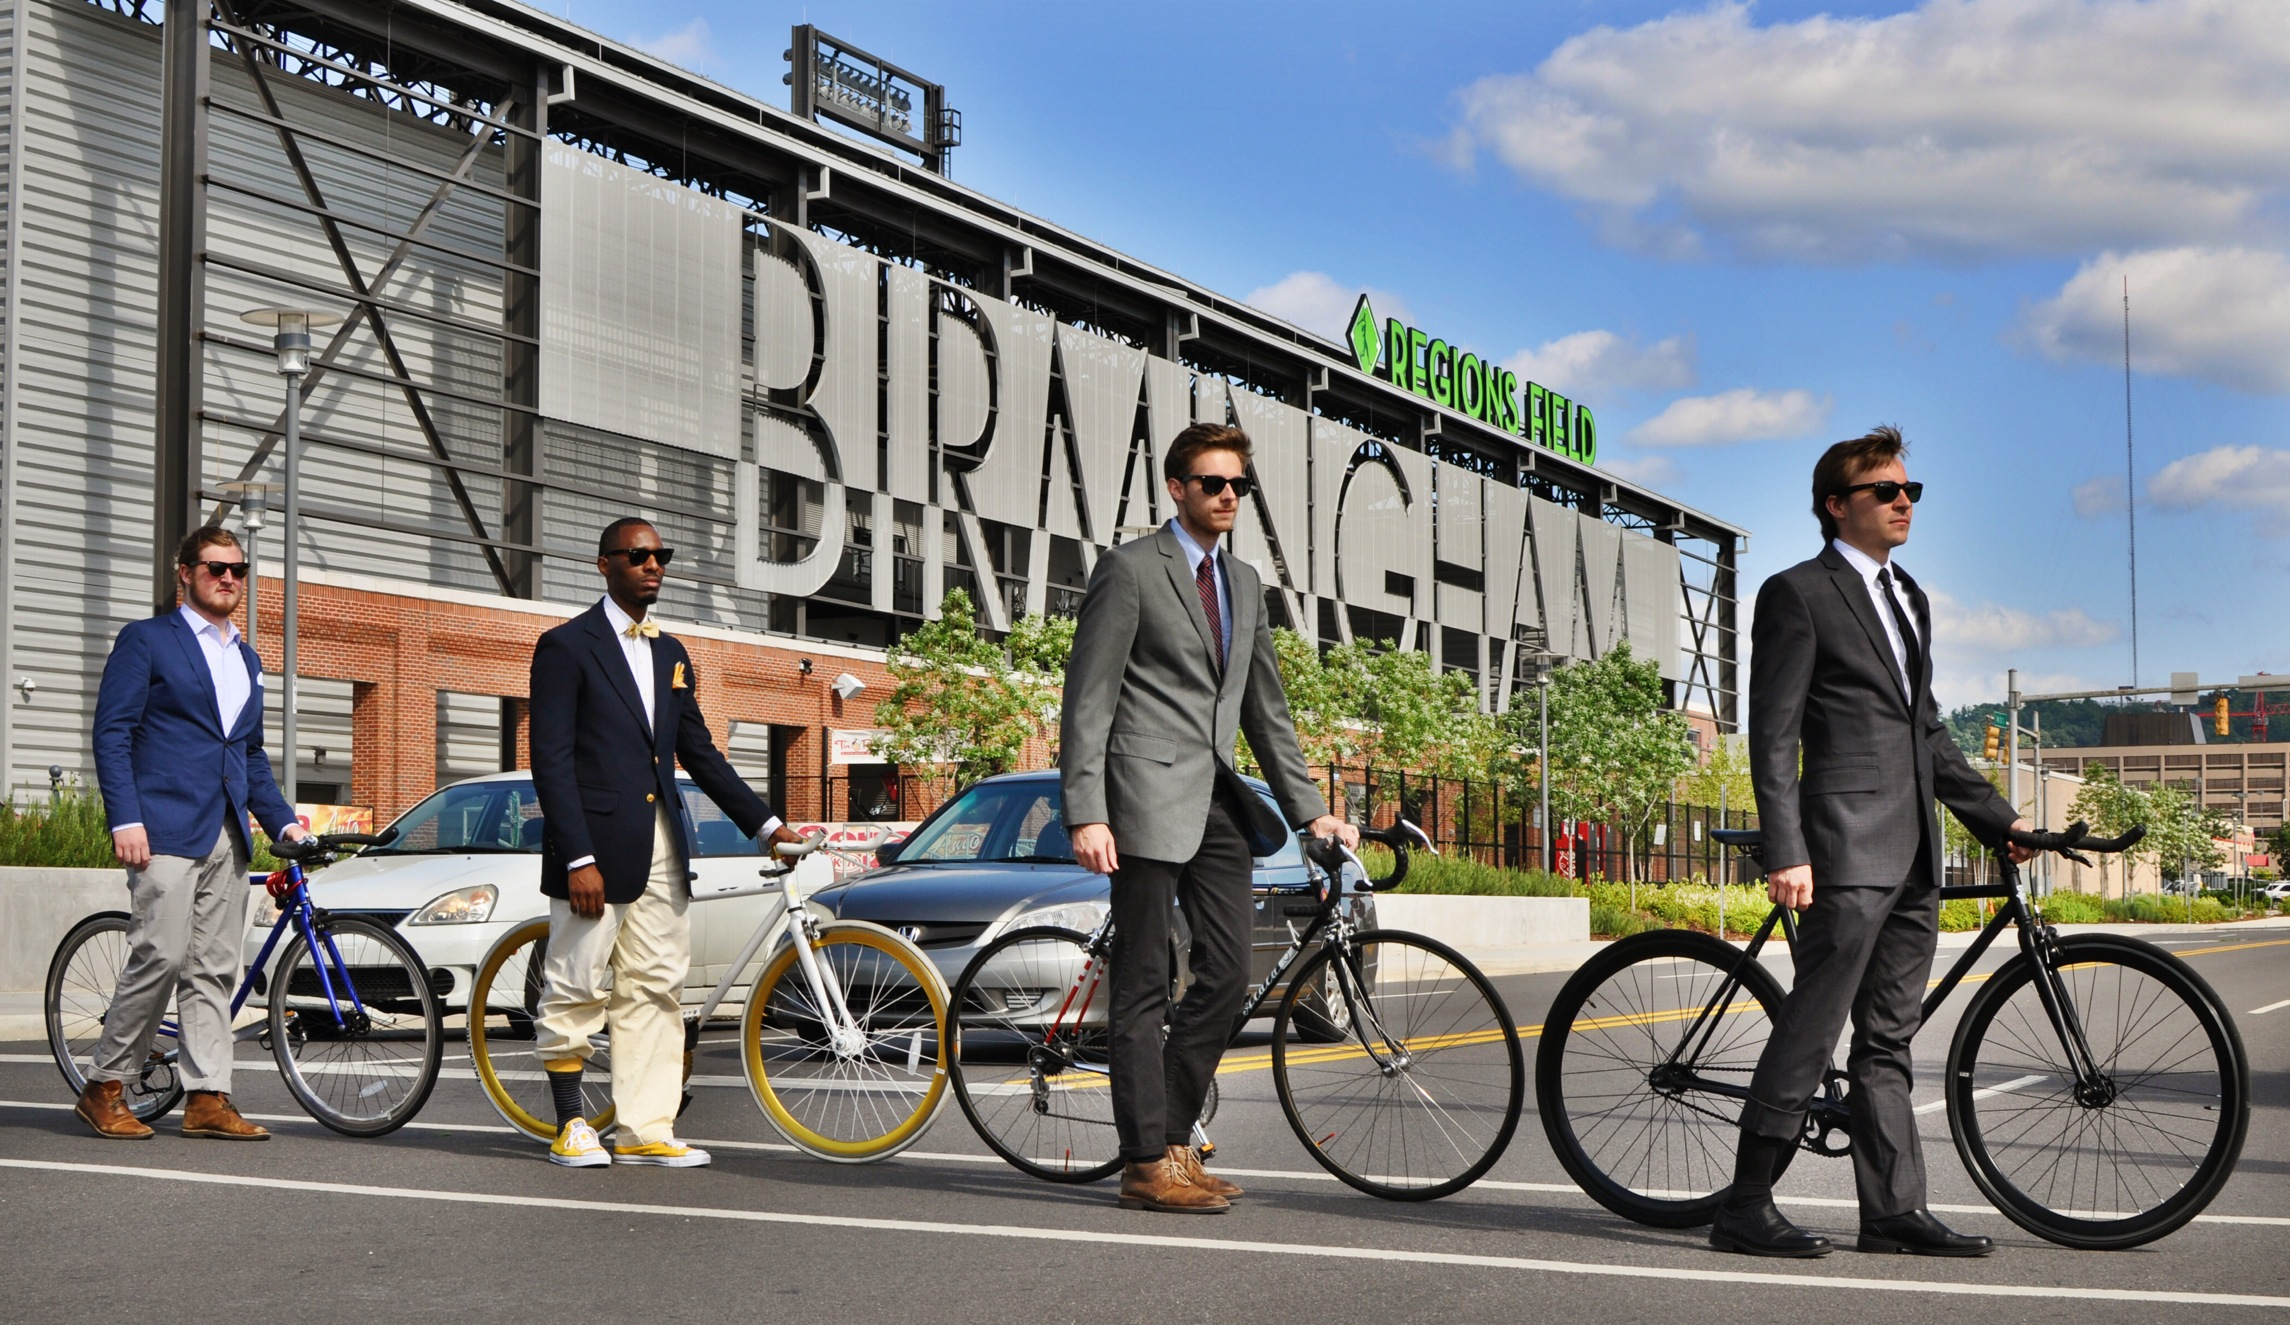 On May 16th, National Bike to Work Day was a success! We loved having our bikes match each of our riders in thier everyday clothes! Come and see what bike matches your professional attire.